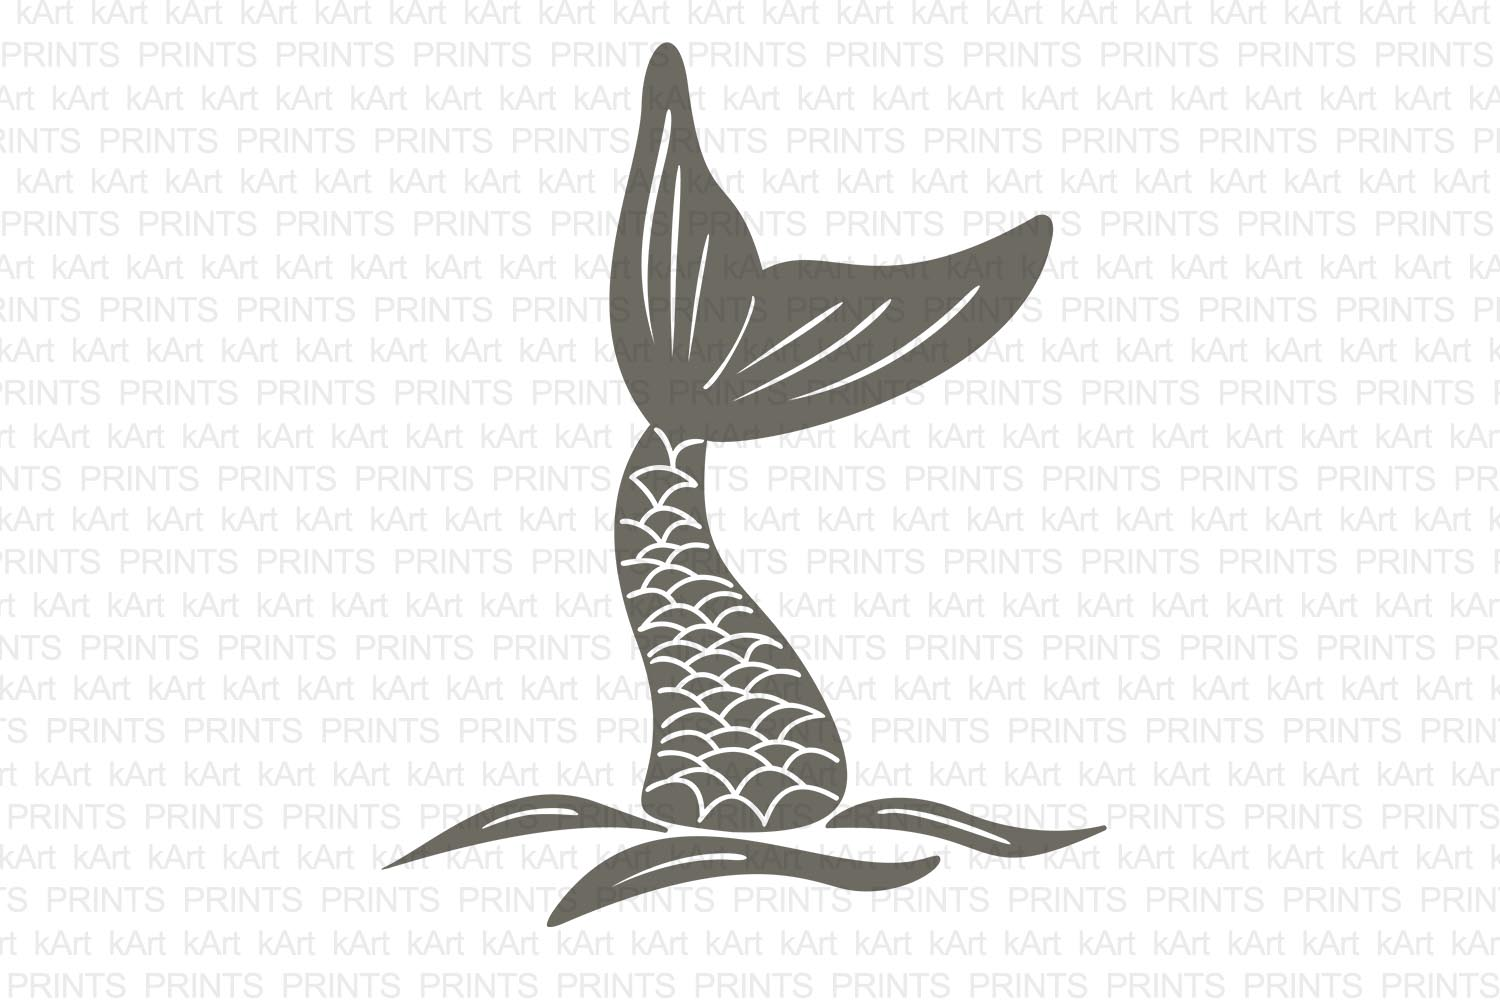 mermaid tail svg, hand drown mermaid tail, fish tail svg, mermaid iron on, hand drawn svg, hand drawn art, hand drawn logo, dxf, png, jpeg example image 2